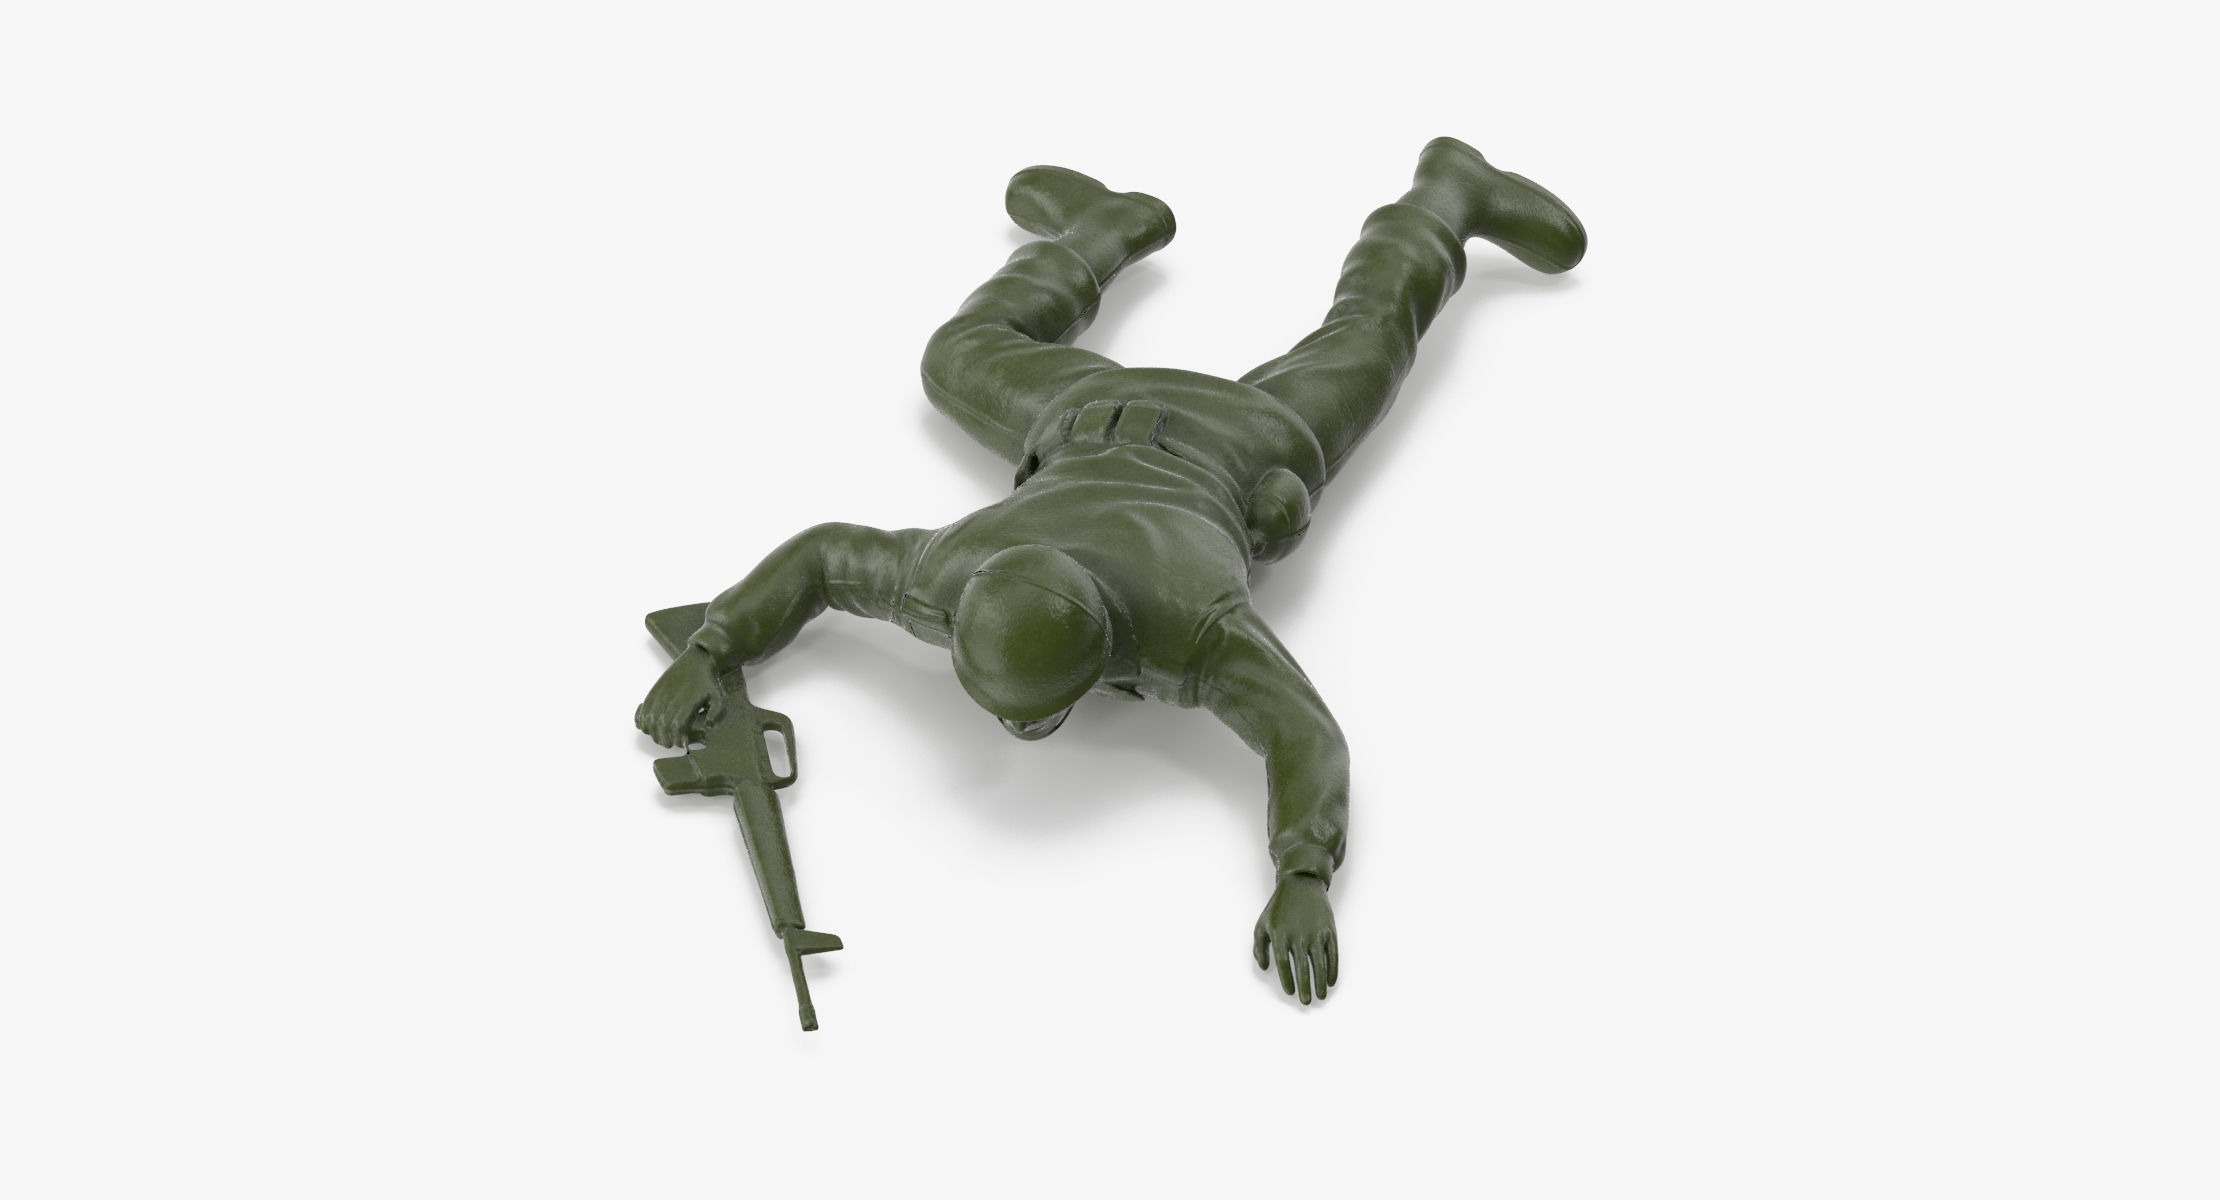 Plastic Toy Soldier 03 - Crawling - reel 1